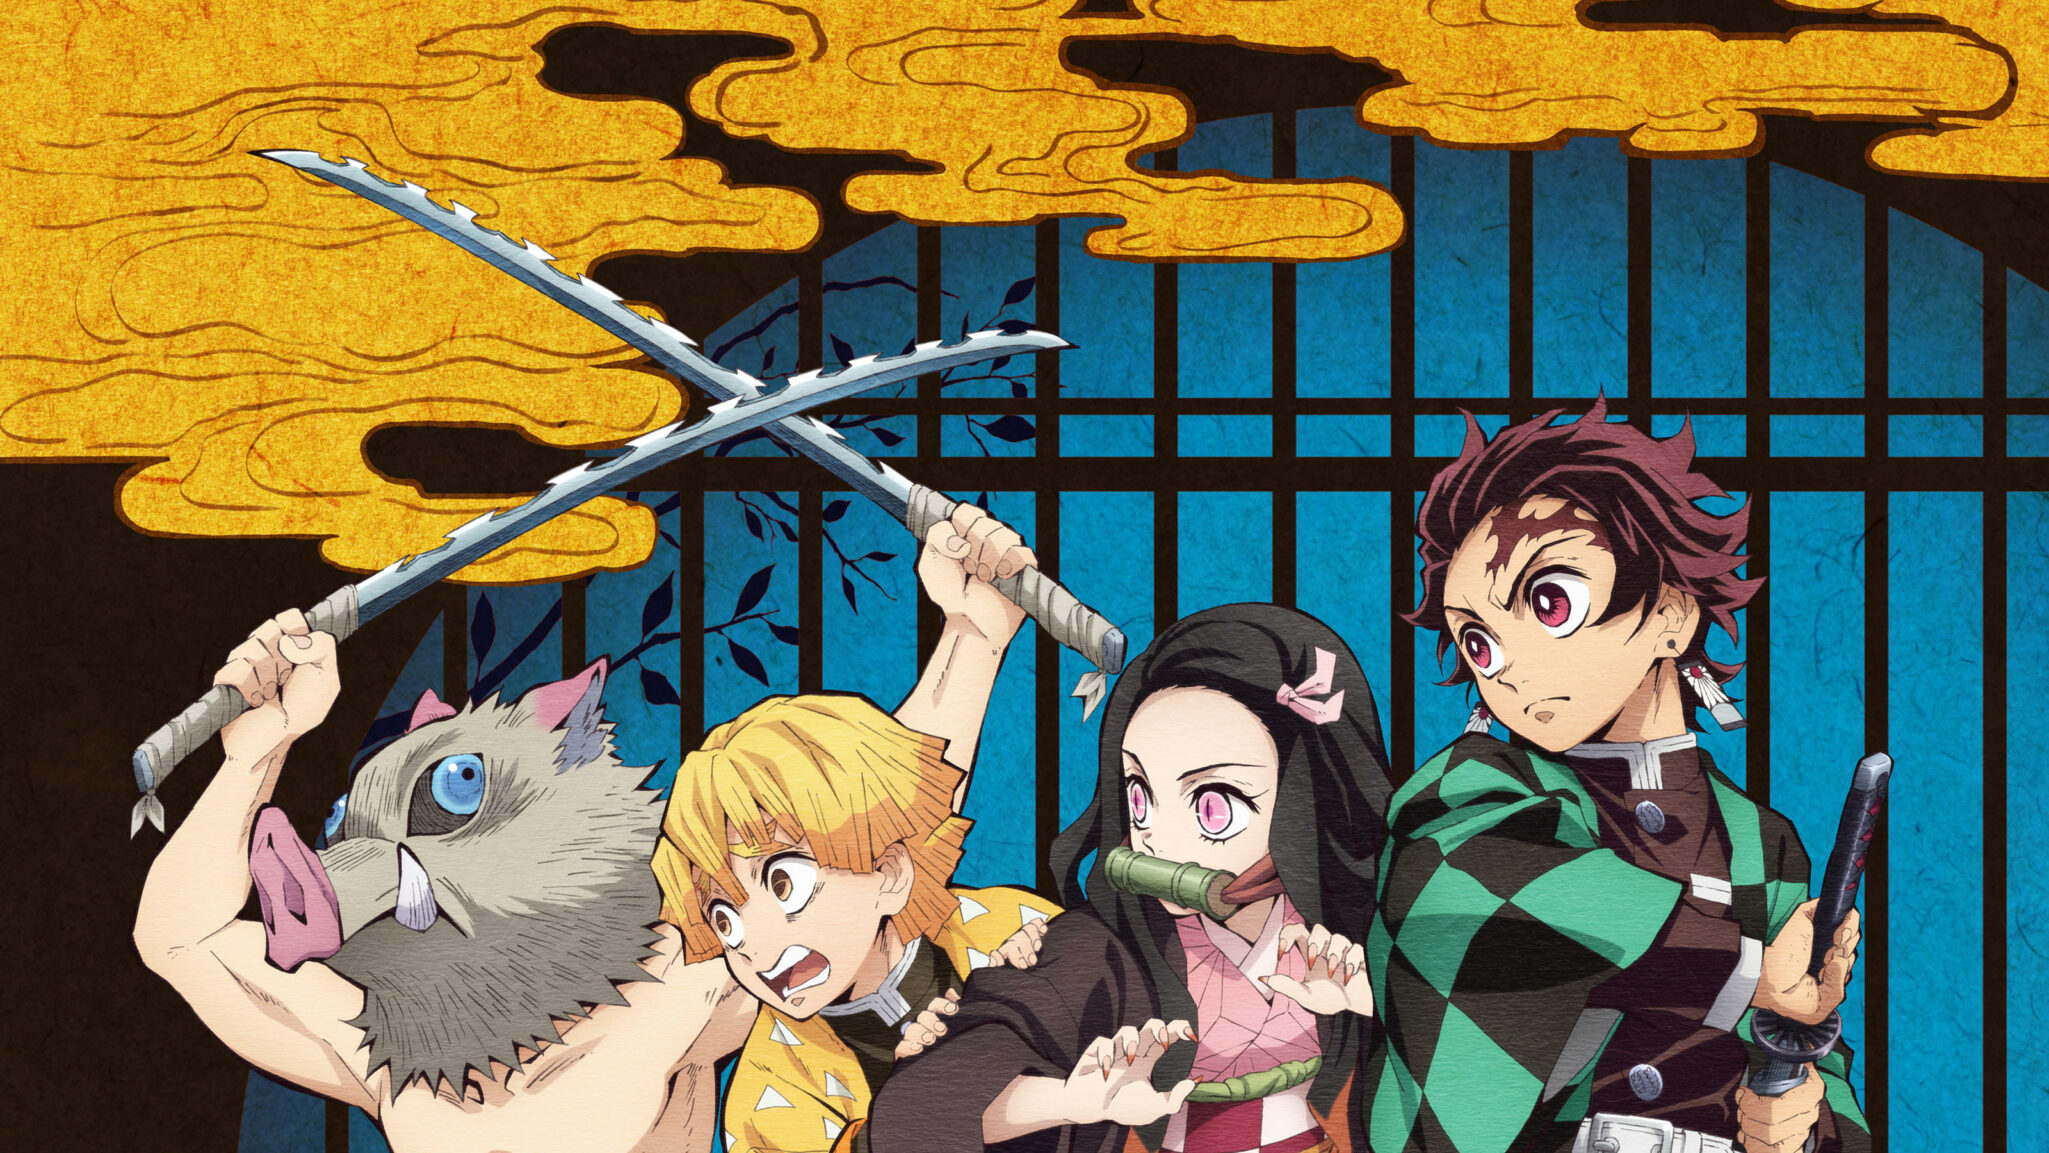 Best Anime on Netflix Right Now - Demon Slayer: Kimetsu no Yaiba Netflix